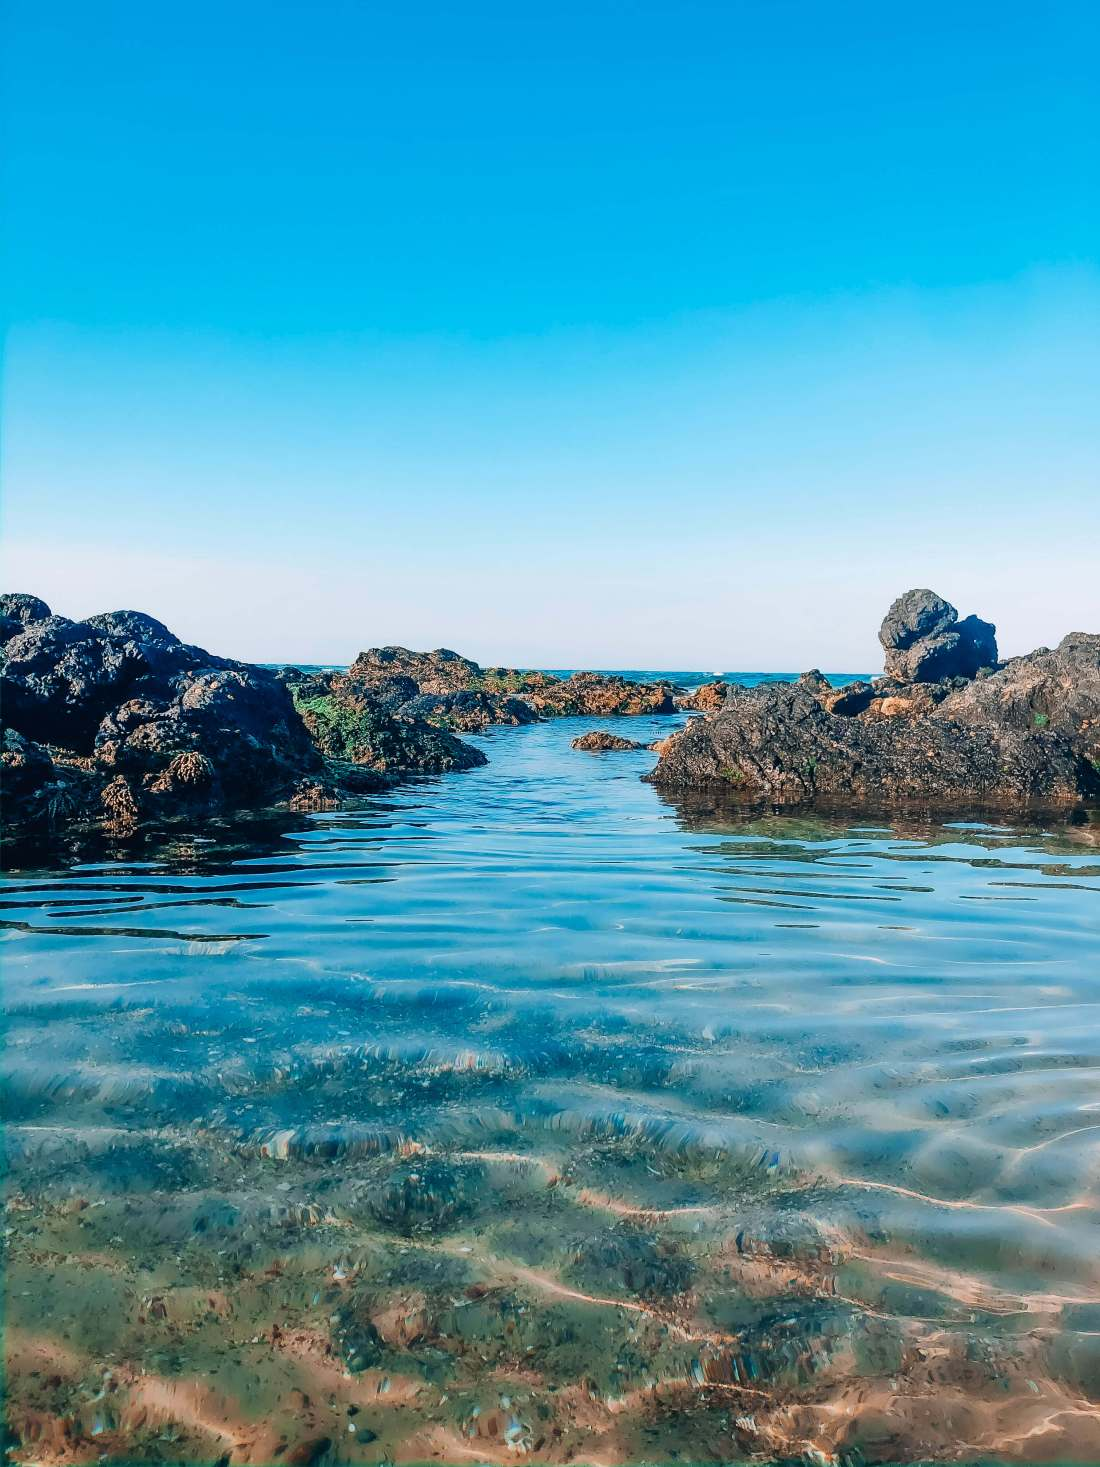 Oxley Beach Rockpool Port Macquarie